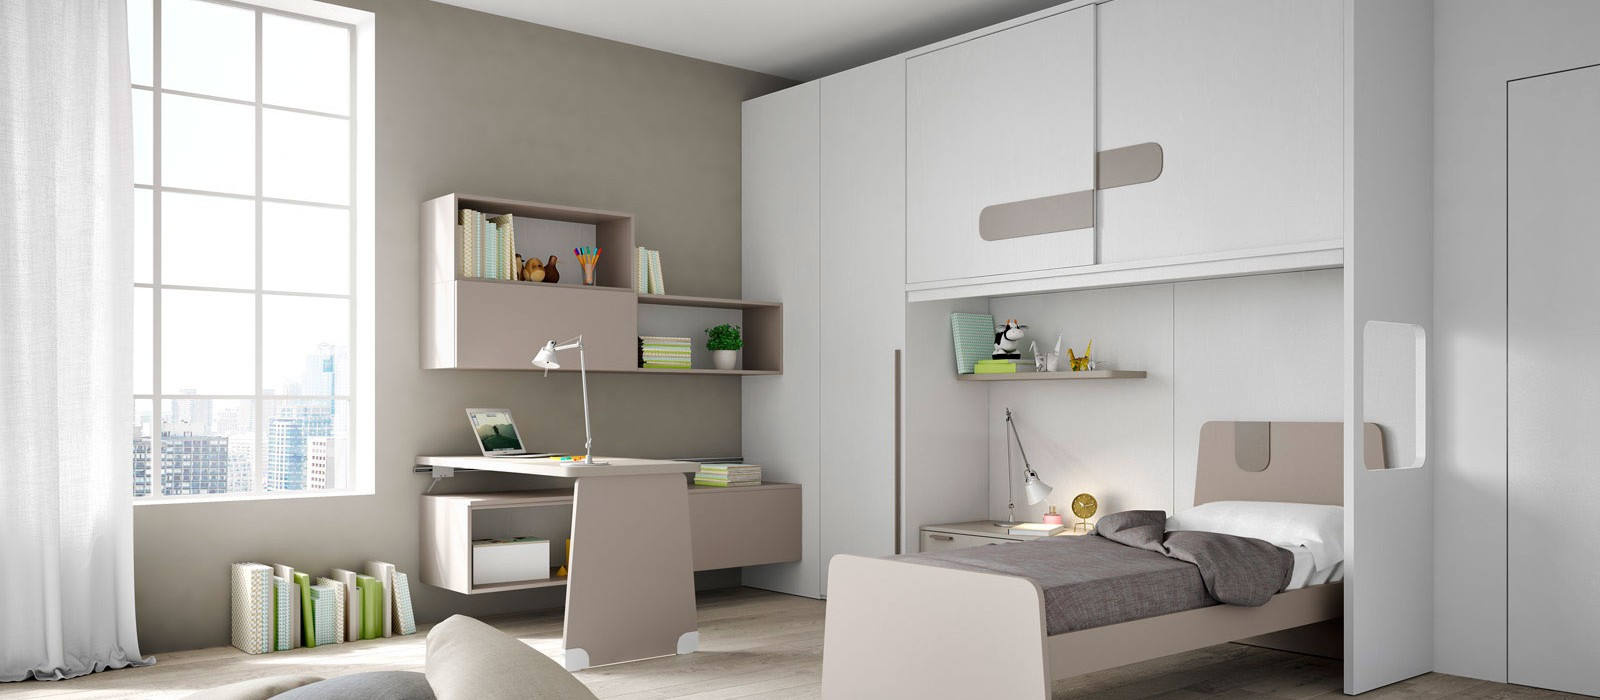 Tamemobili for Camere per ragazzi design